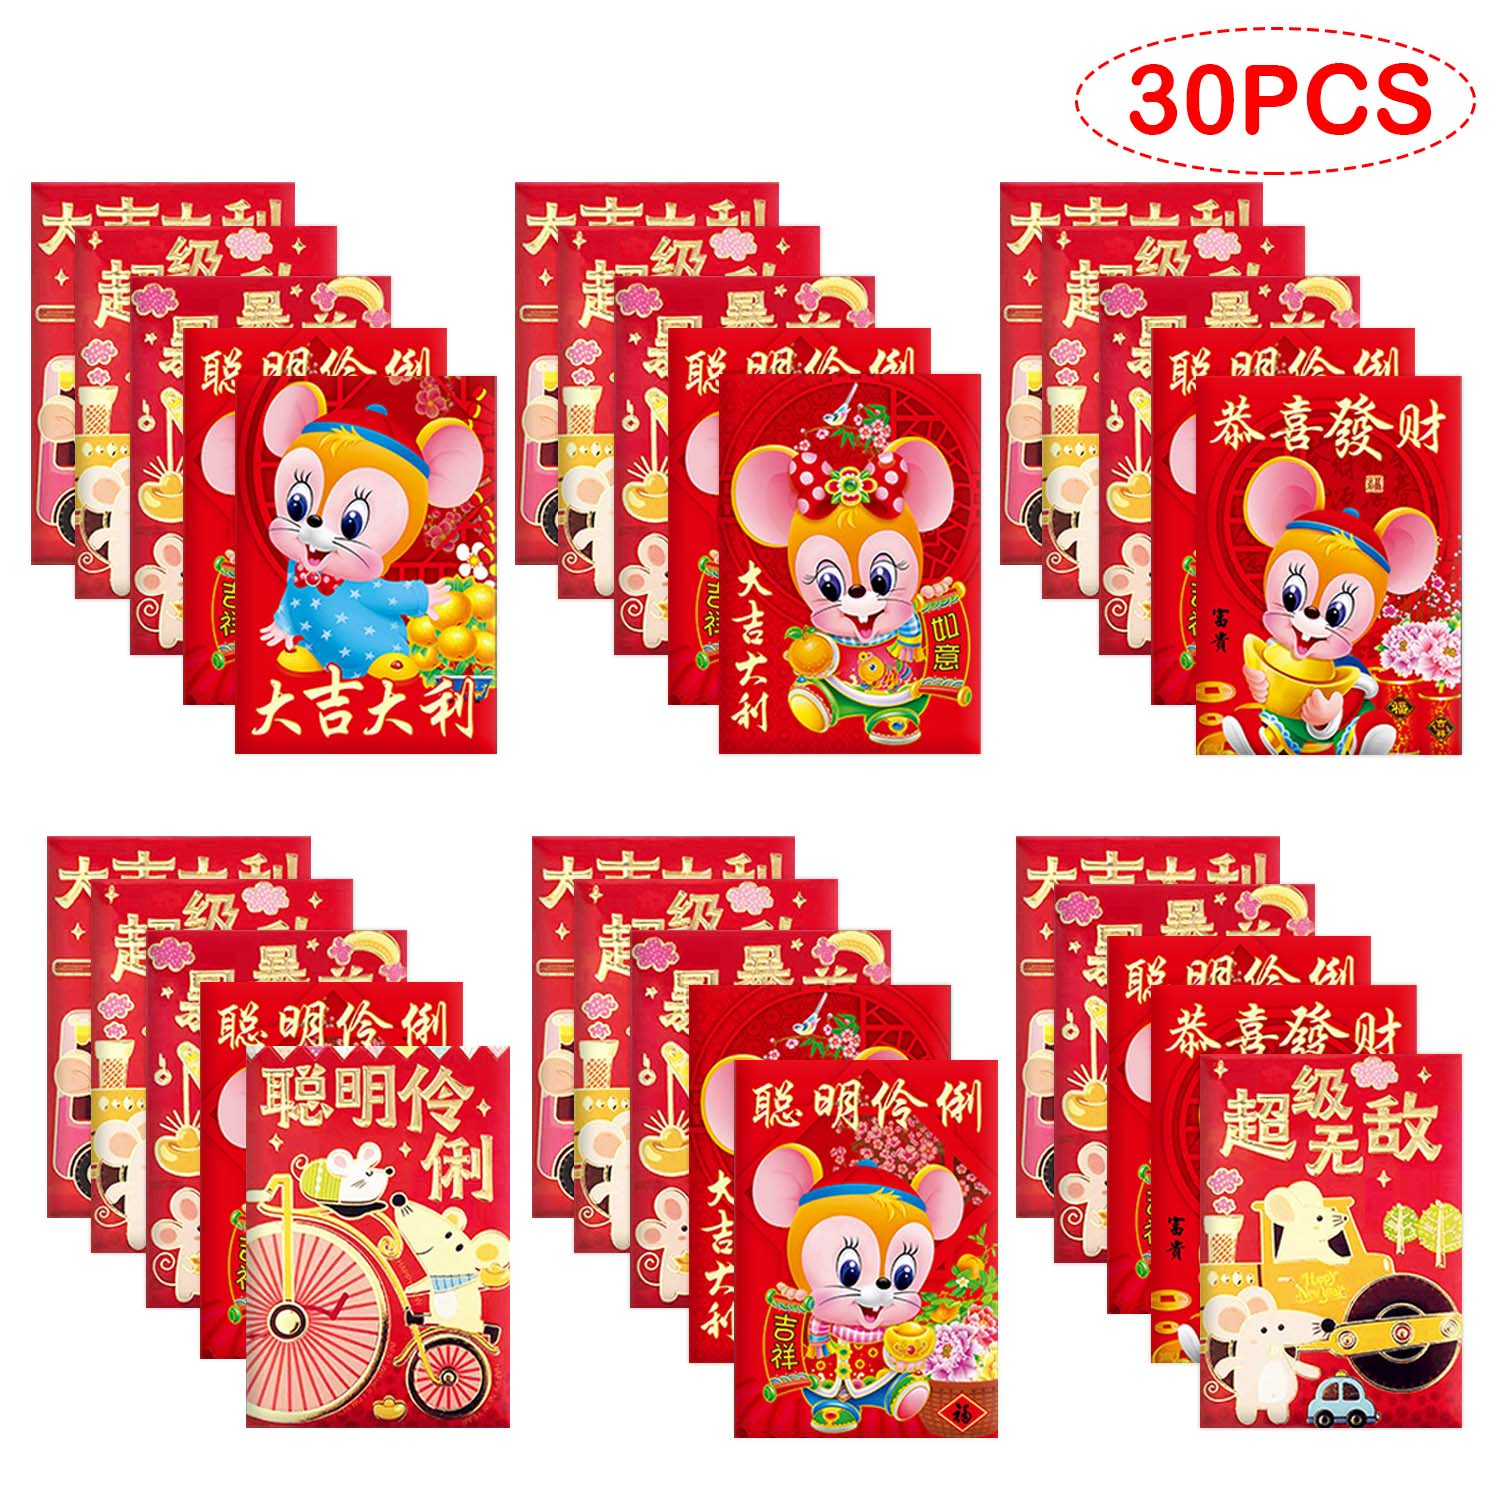 30pcs Chinese Red Lucky Envelopes 2020 Year Of The Rat Hong Bao Money Packets For Lunar New Year Spring Festival Random Style